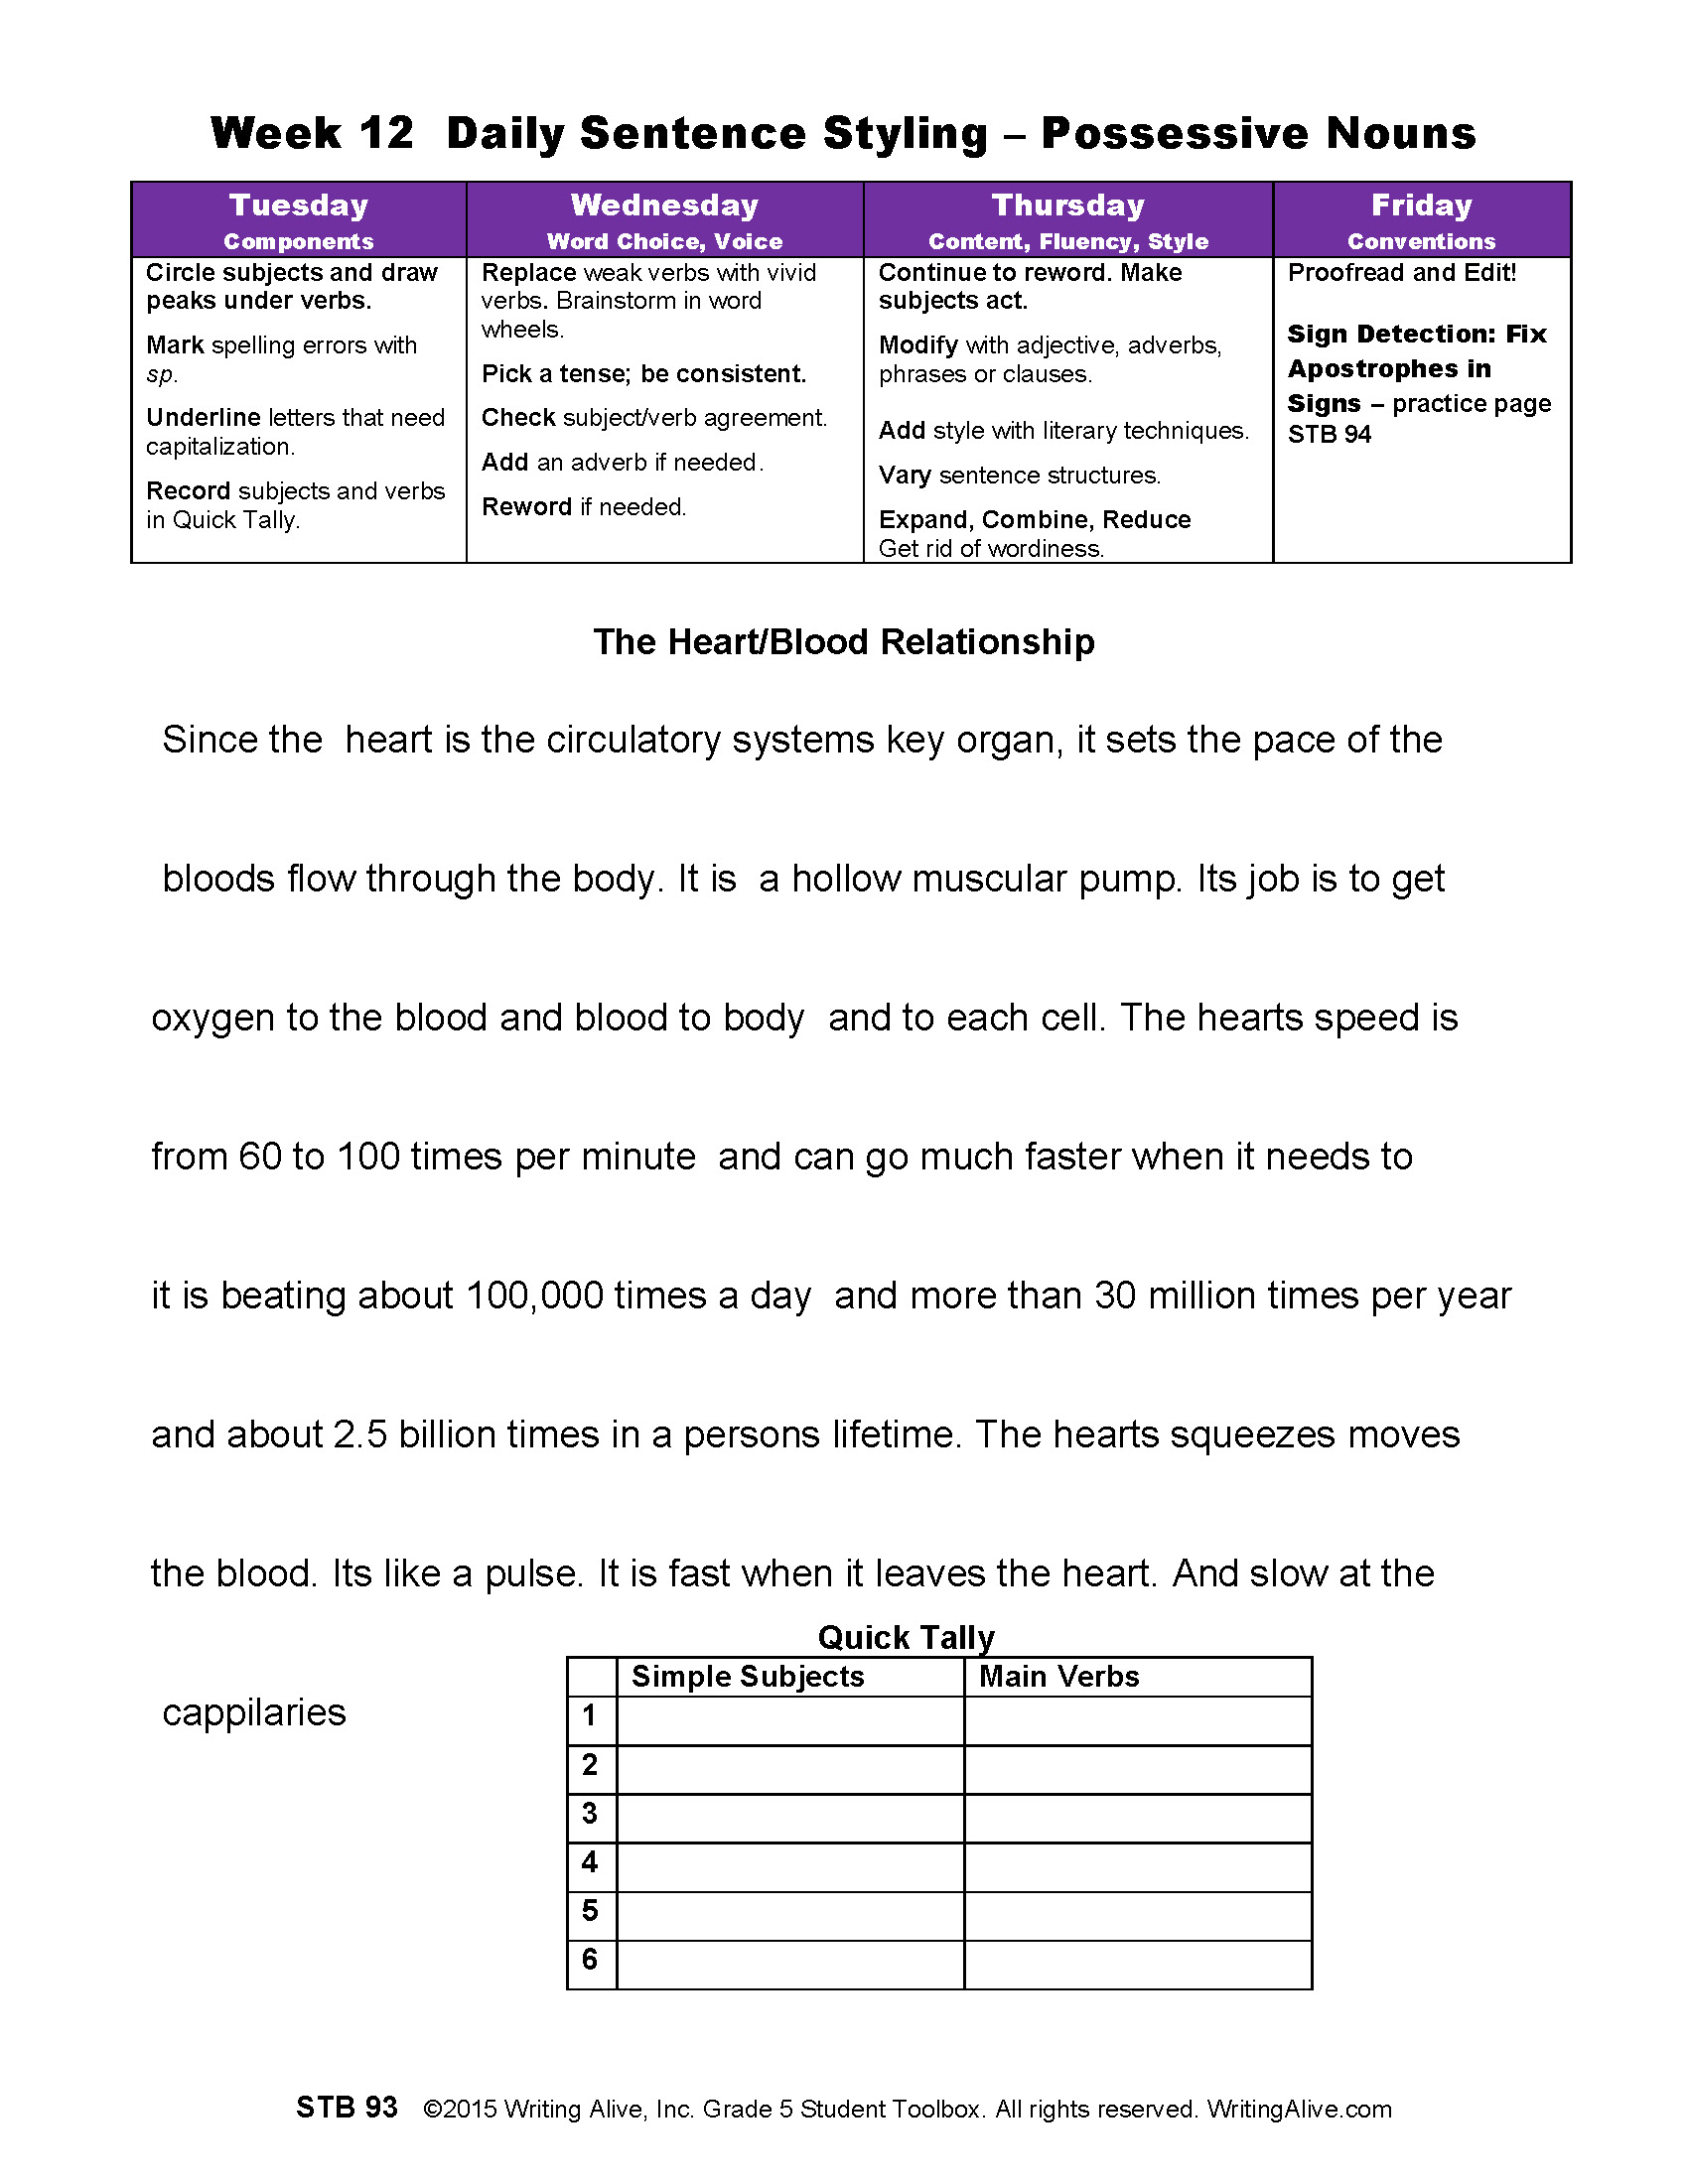 Dss Week 12 Possessive Nouns The Heart Blood Connection